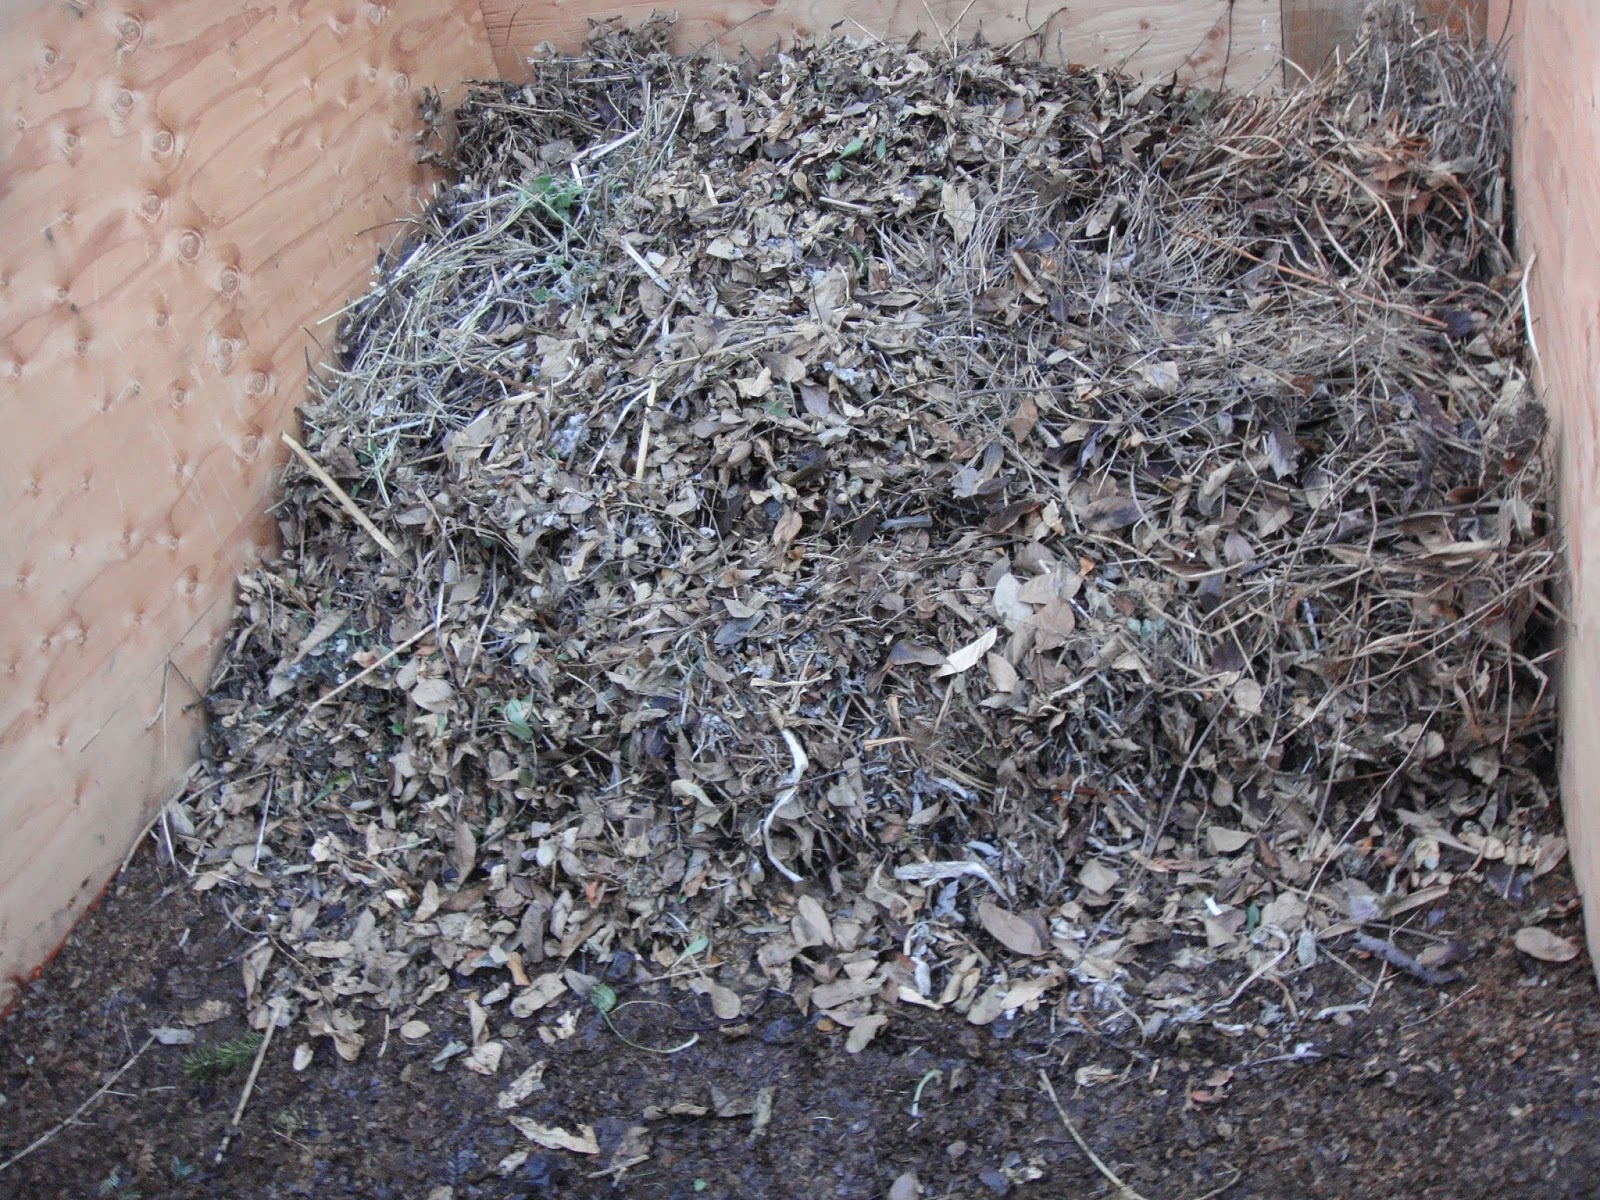 New Compost Pile Just Started in The Oracle's Garden, First Layer of Brown Material From Spring Cleanup such as Dried Leaves, Clippings from Flower Borders and Beds, and Chopped Up Small Branches or Twigs along with General Yard Debris.